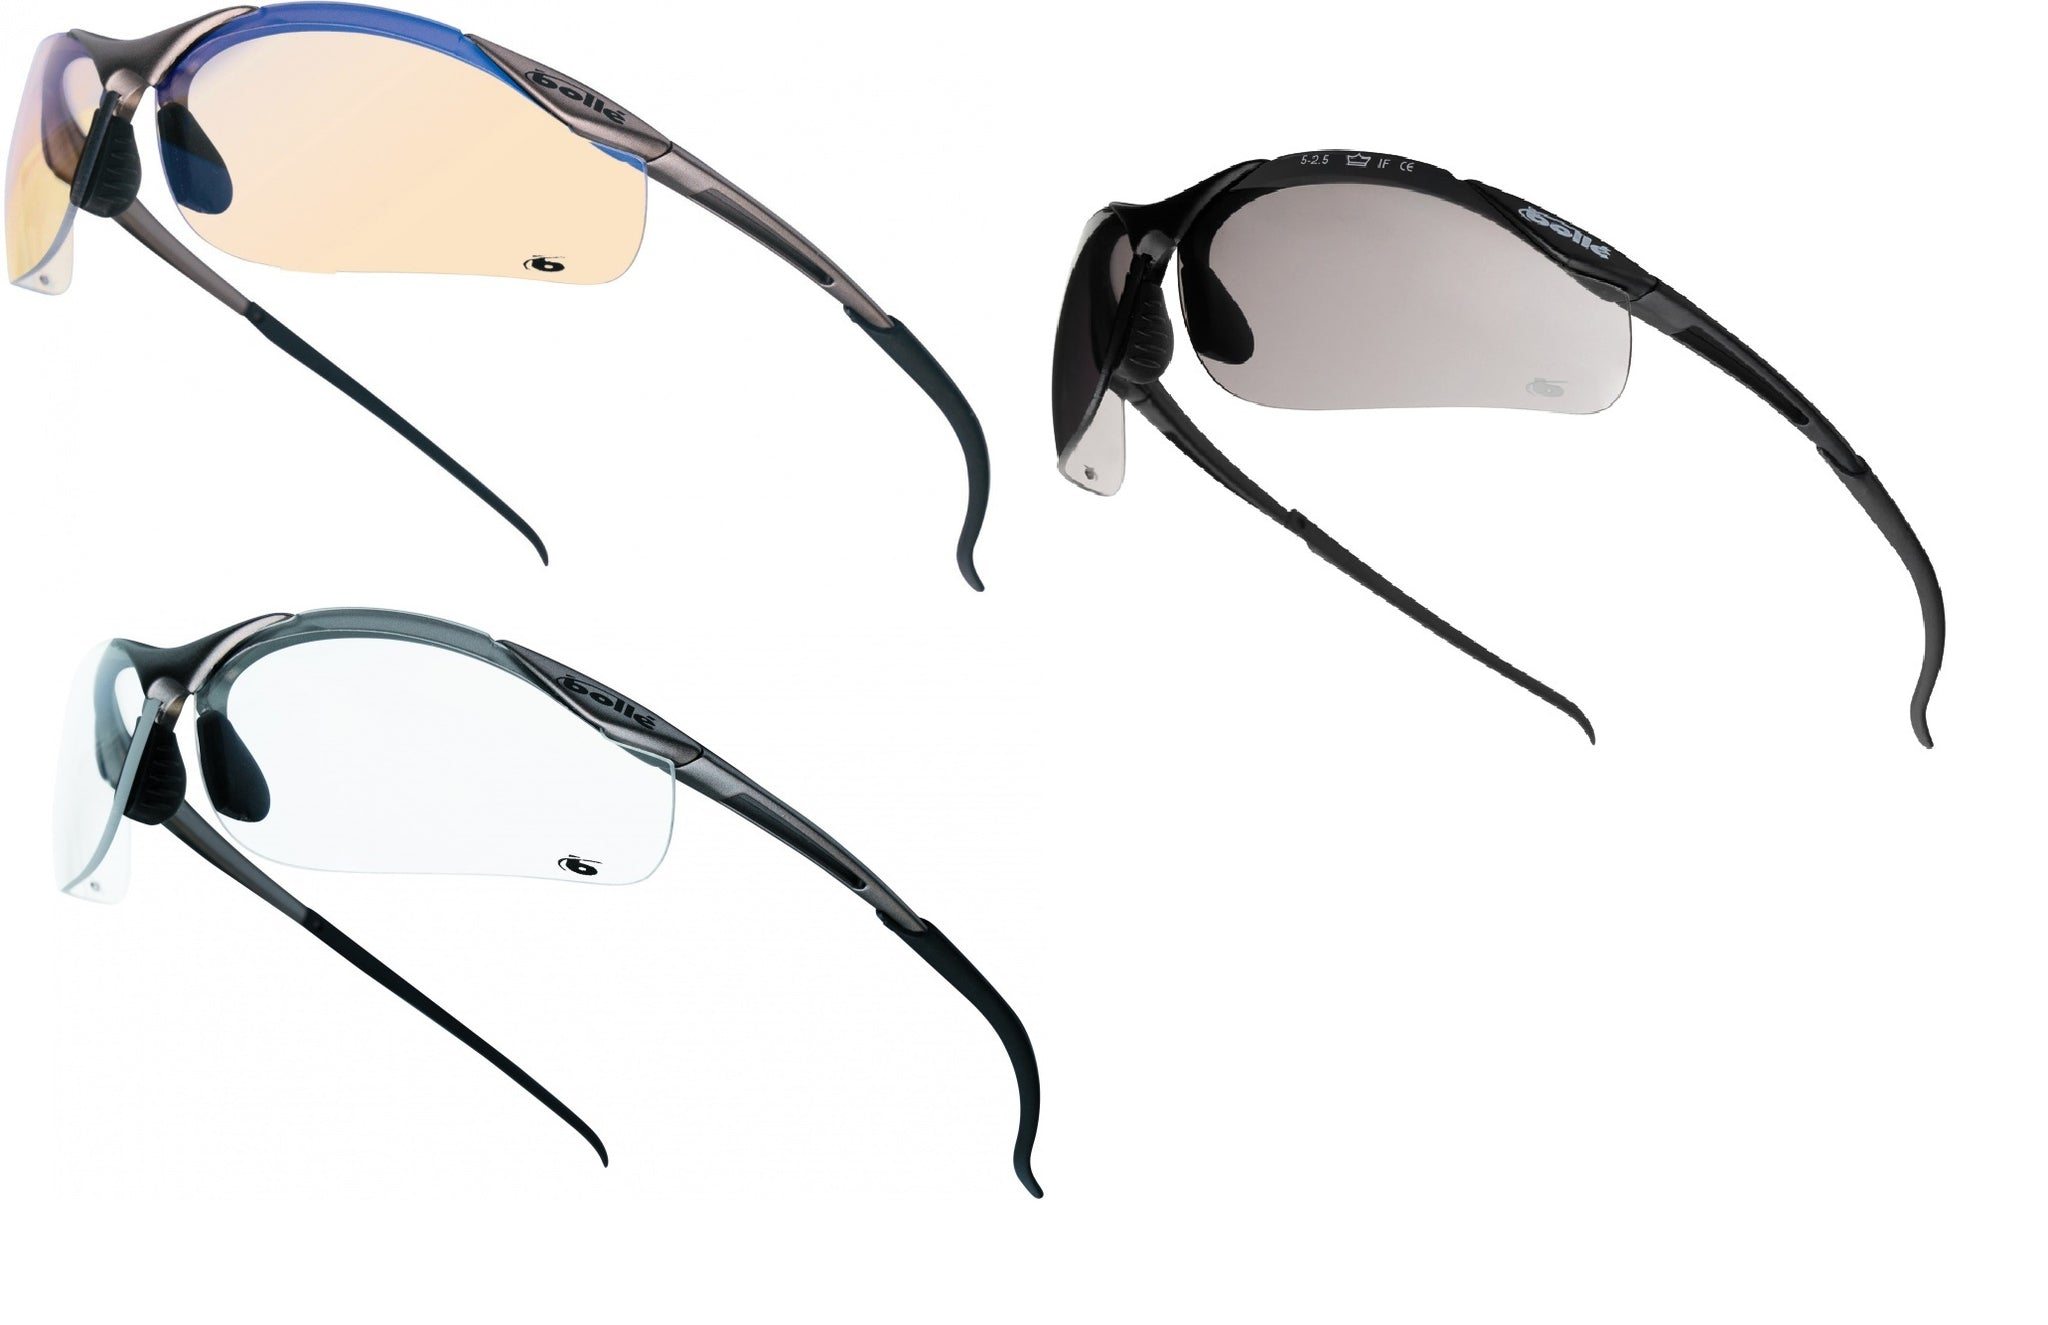 BOLLE Contour METAL FRAMES Smoke Lens Safety Cycling Sunglasses FREE BOLLE POUCH